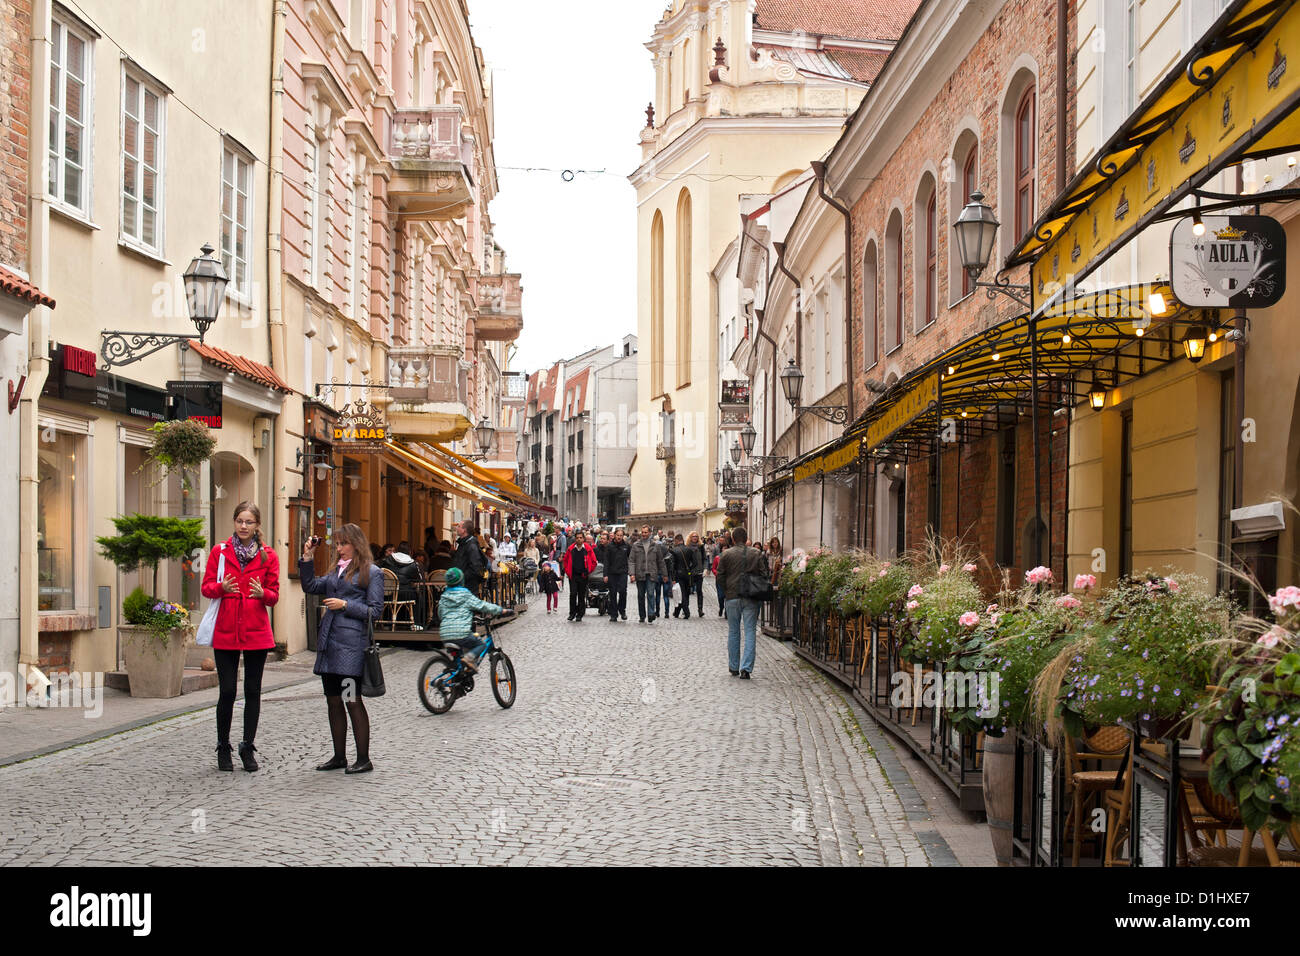 Didžioji Street, the main street in the old town in Vilnius, the capital of Lithuania. - Stock Image